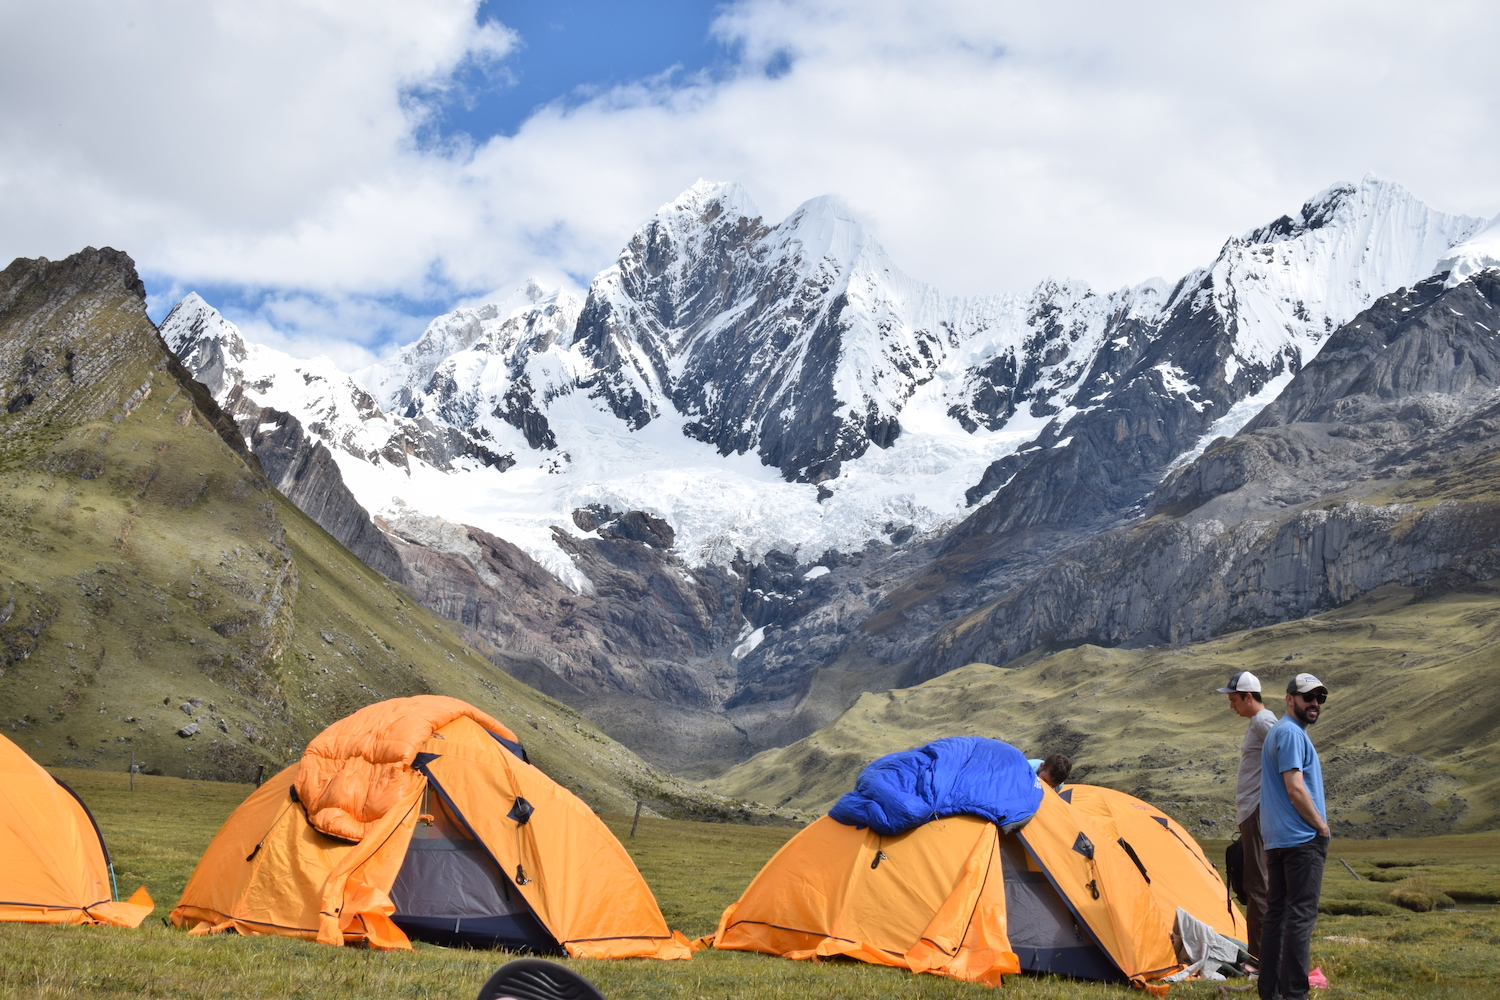 Camping spot in the valley of the Cordillera Huayhuash